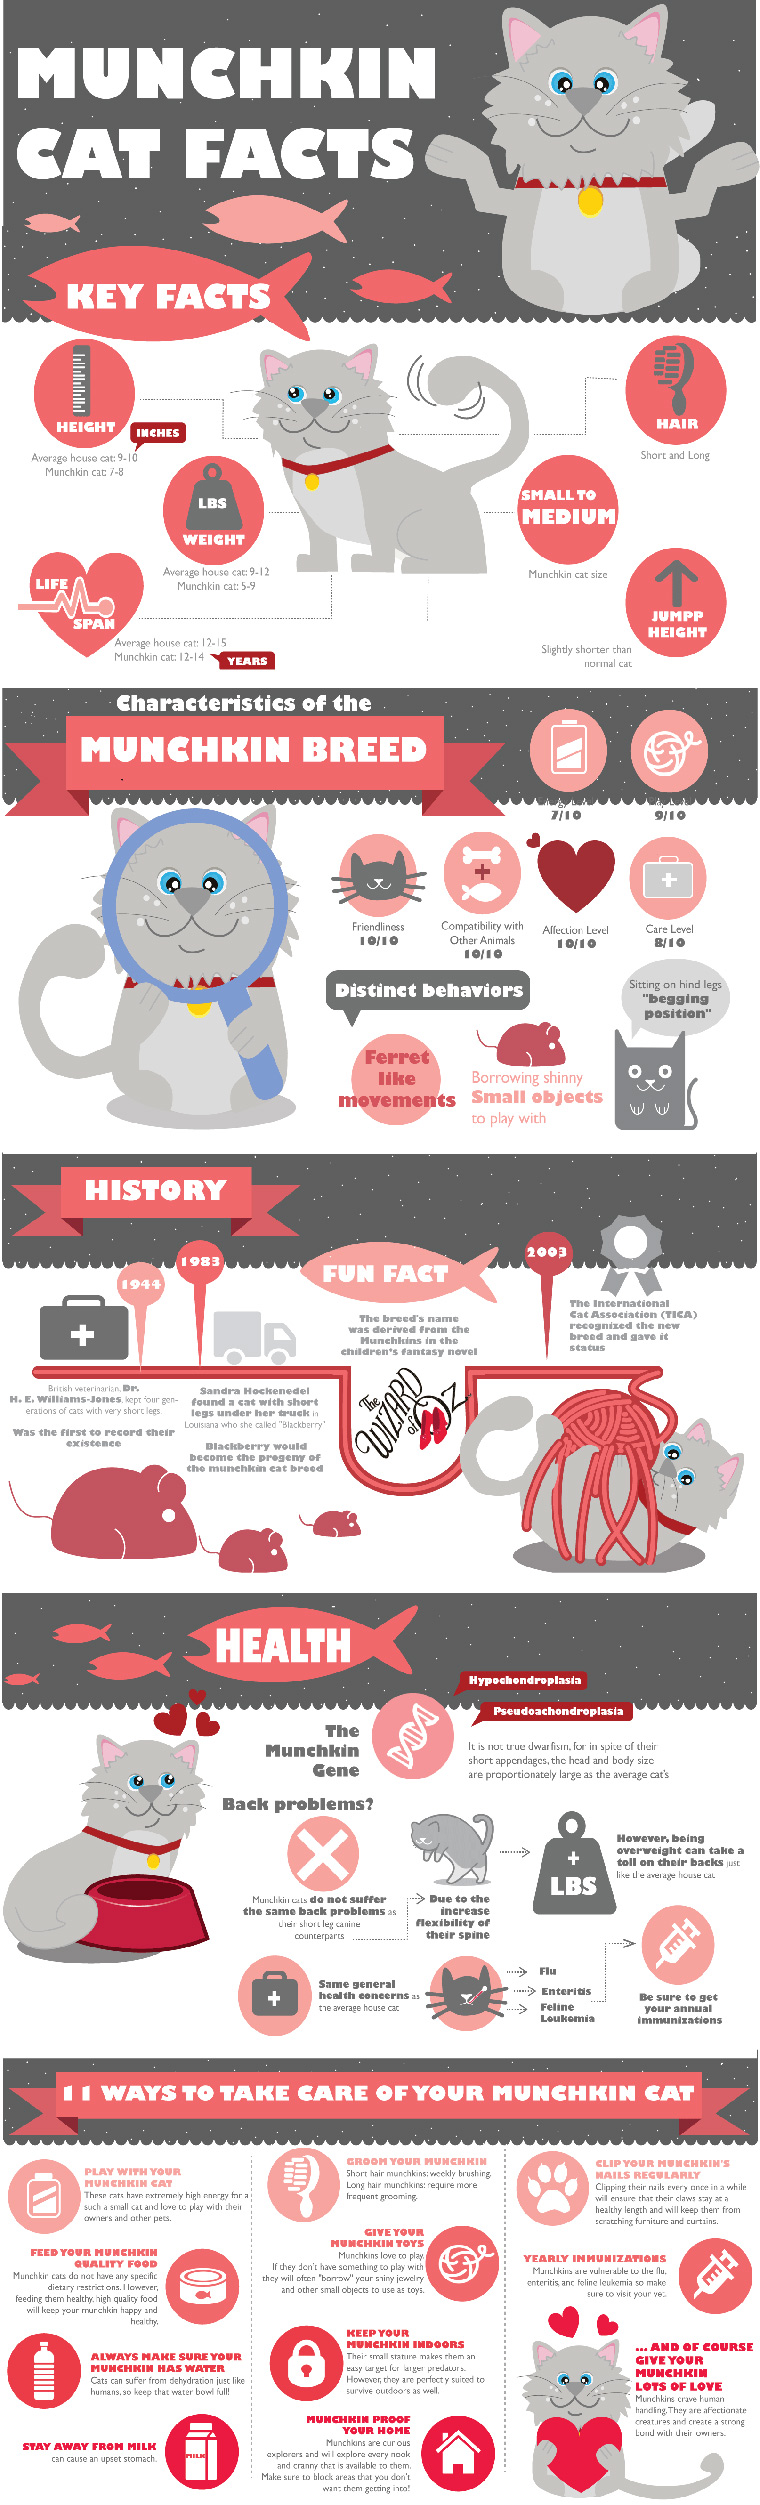 What is a Munchkin Cat?